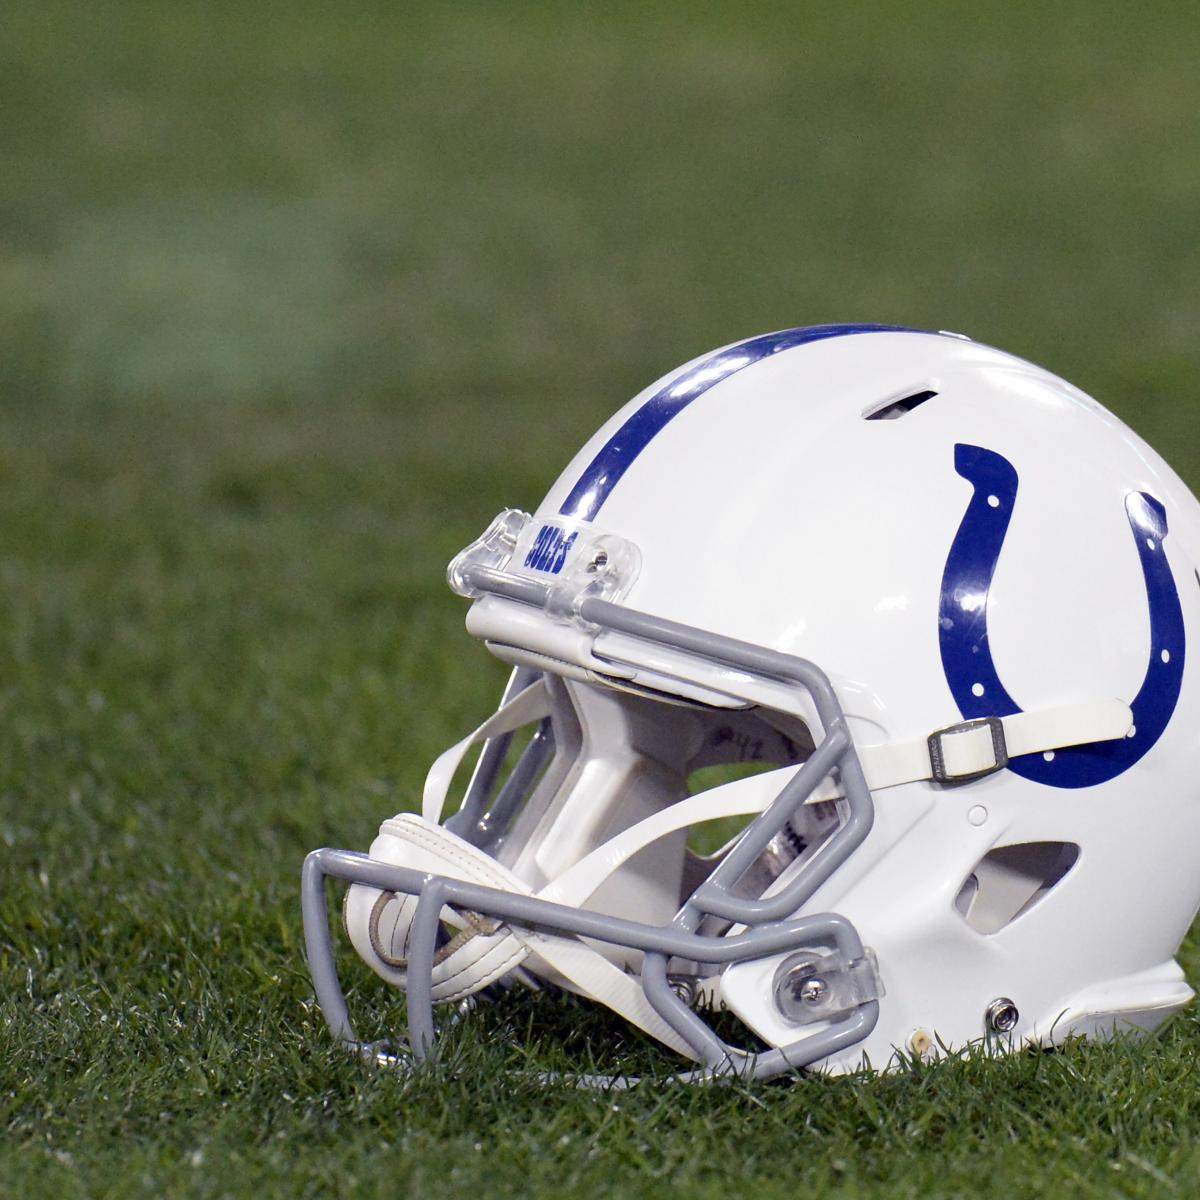 17-year-old who announced Colts draft picks dies